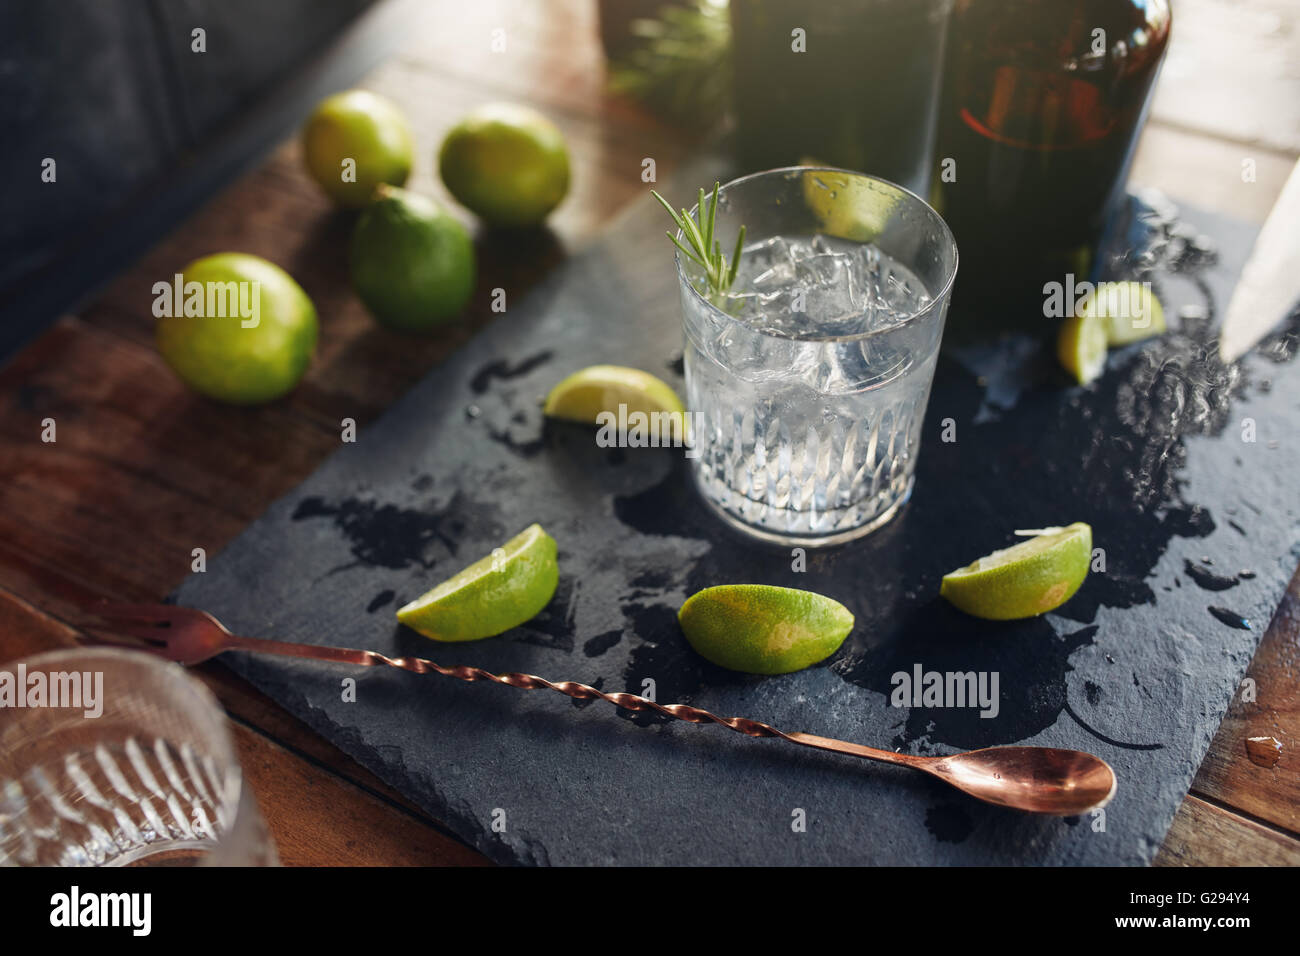 Close up of fresh made cocktail drink with lemon slices and spoon on the board. - Stock Image